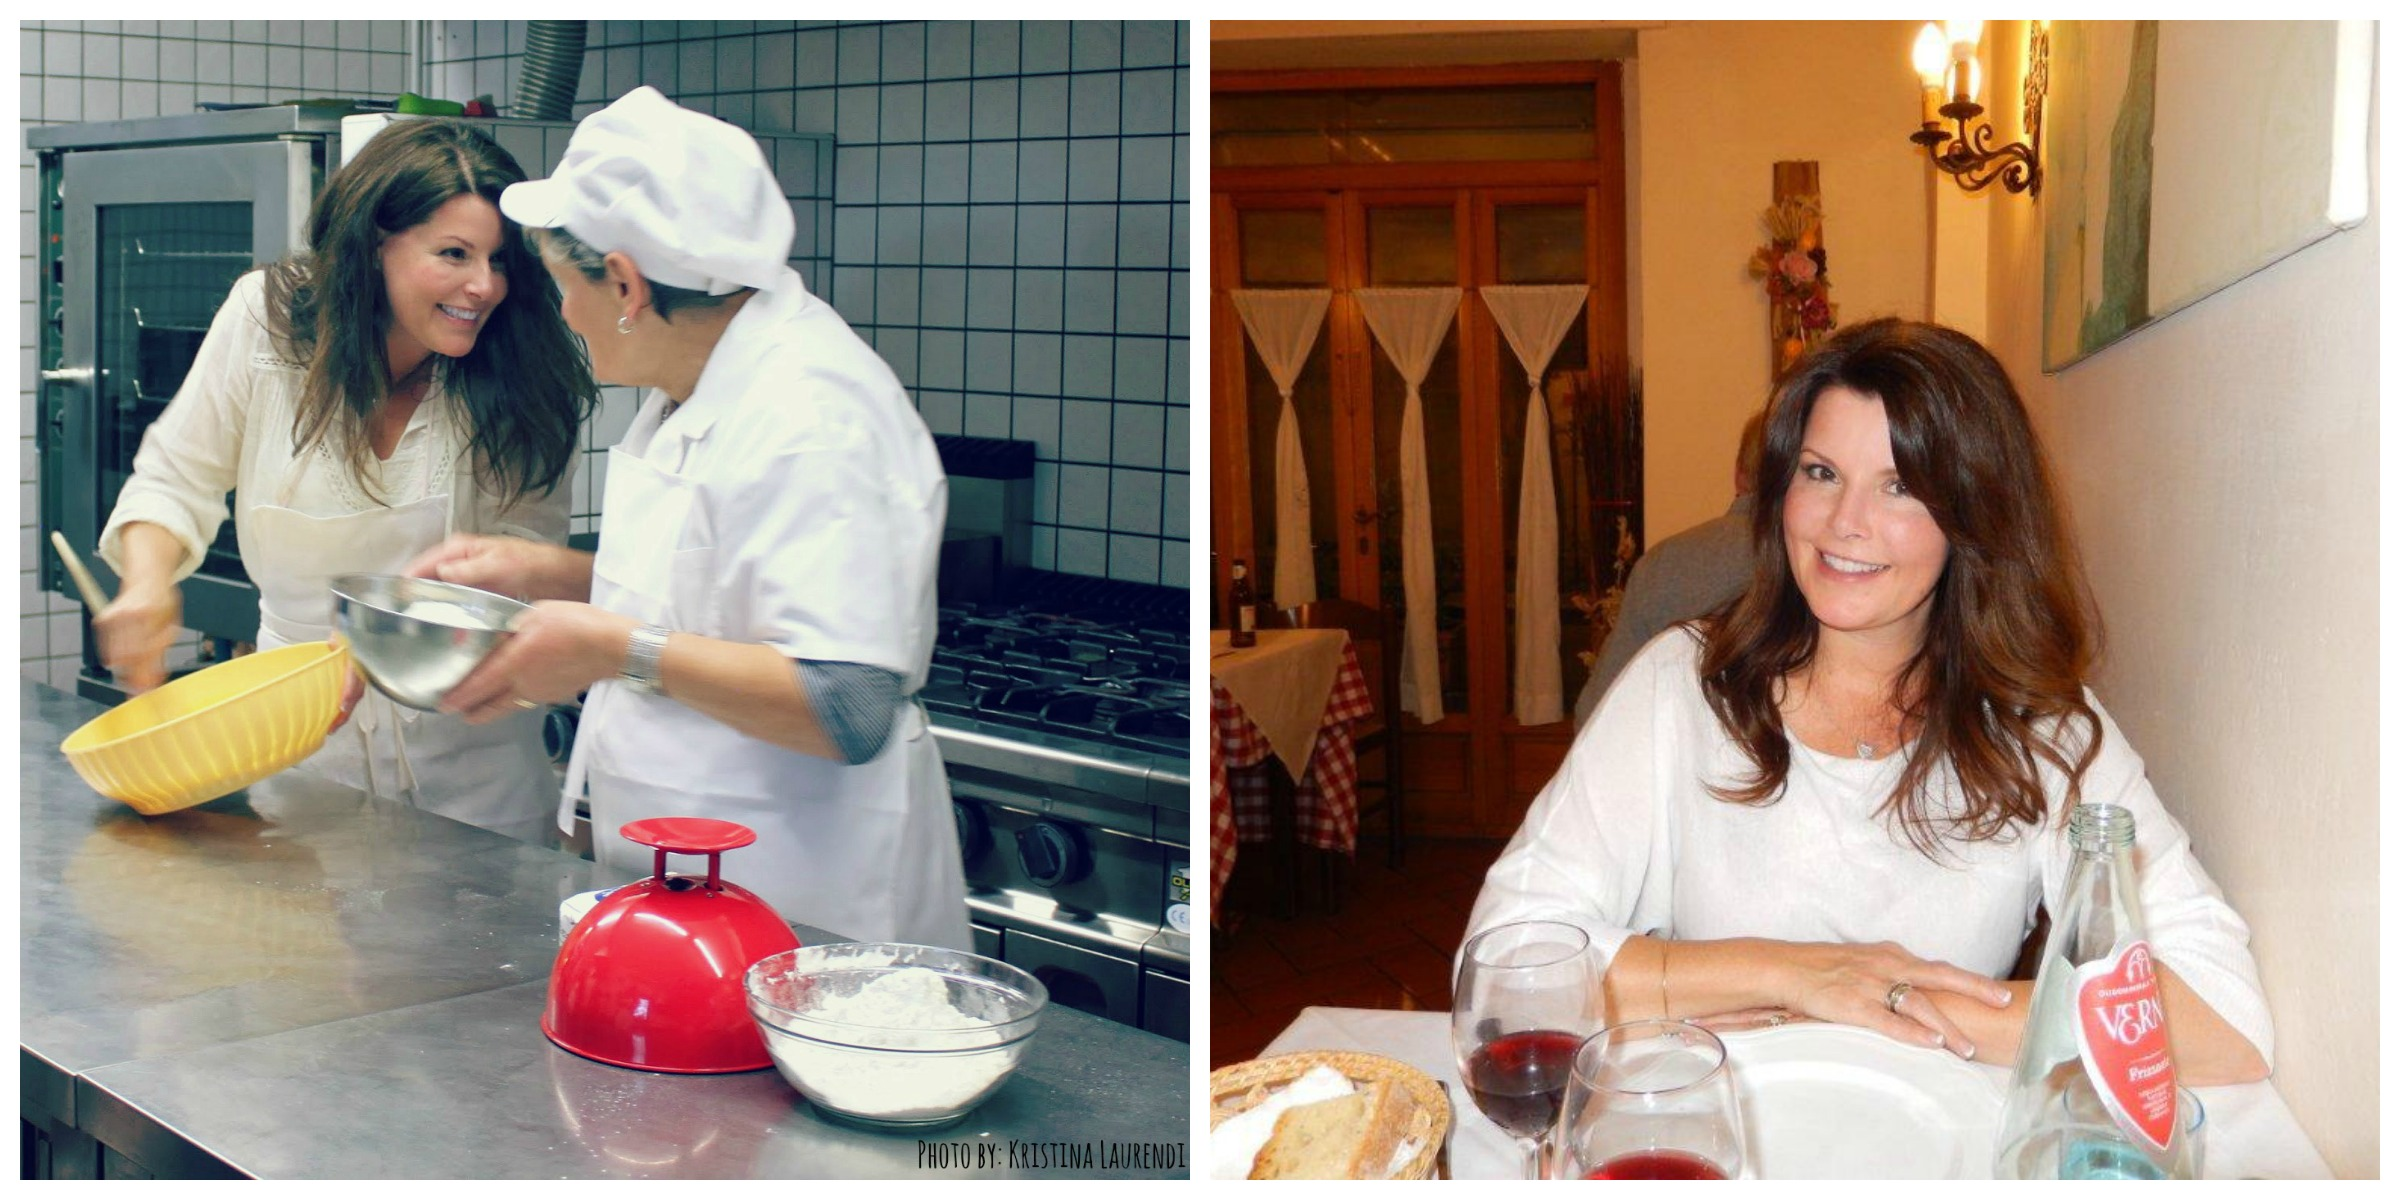 Chef Ana and Me.  Making Crostata // Me in my place among plates of Tuscan cuisine